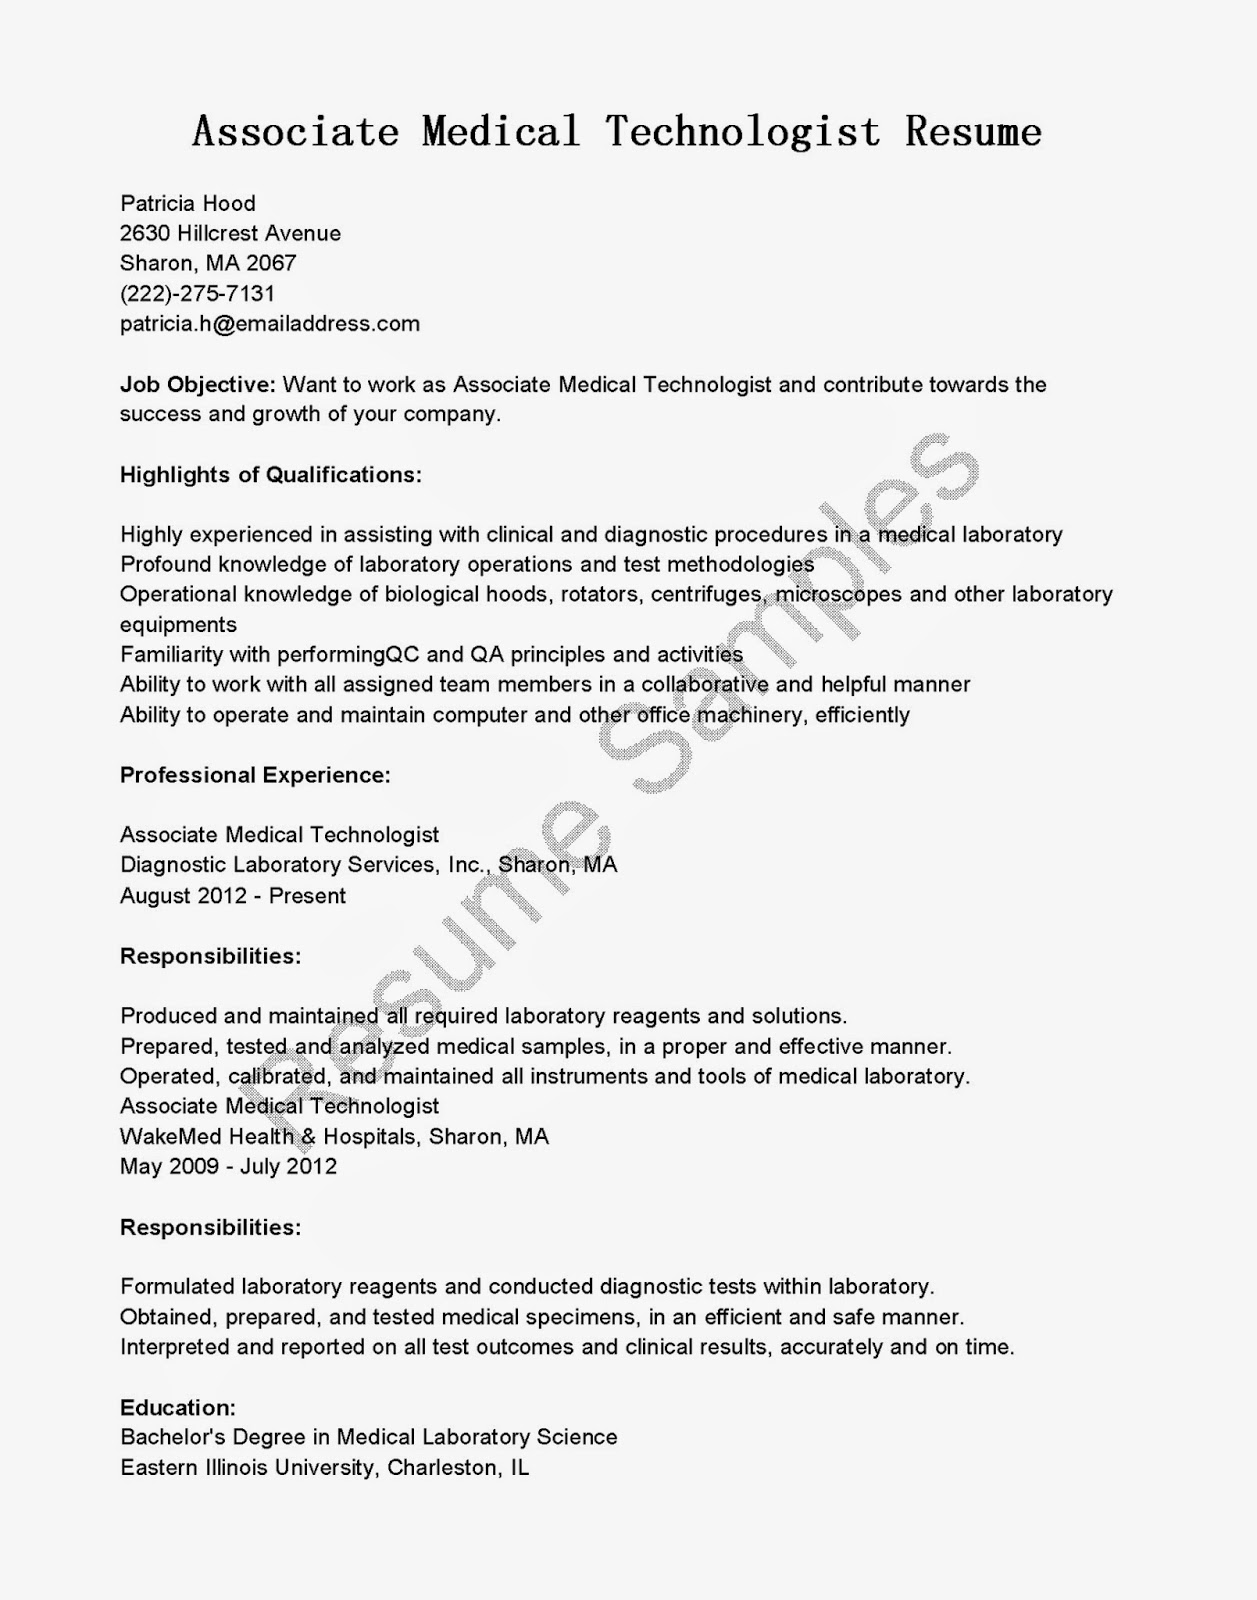 Resume Format For Spa Manager College Essays About Basketball A  Clinical Laboratory Scientist Resume